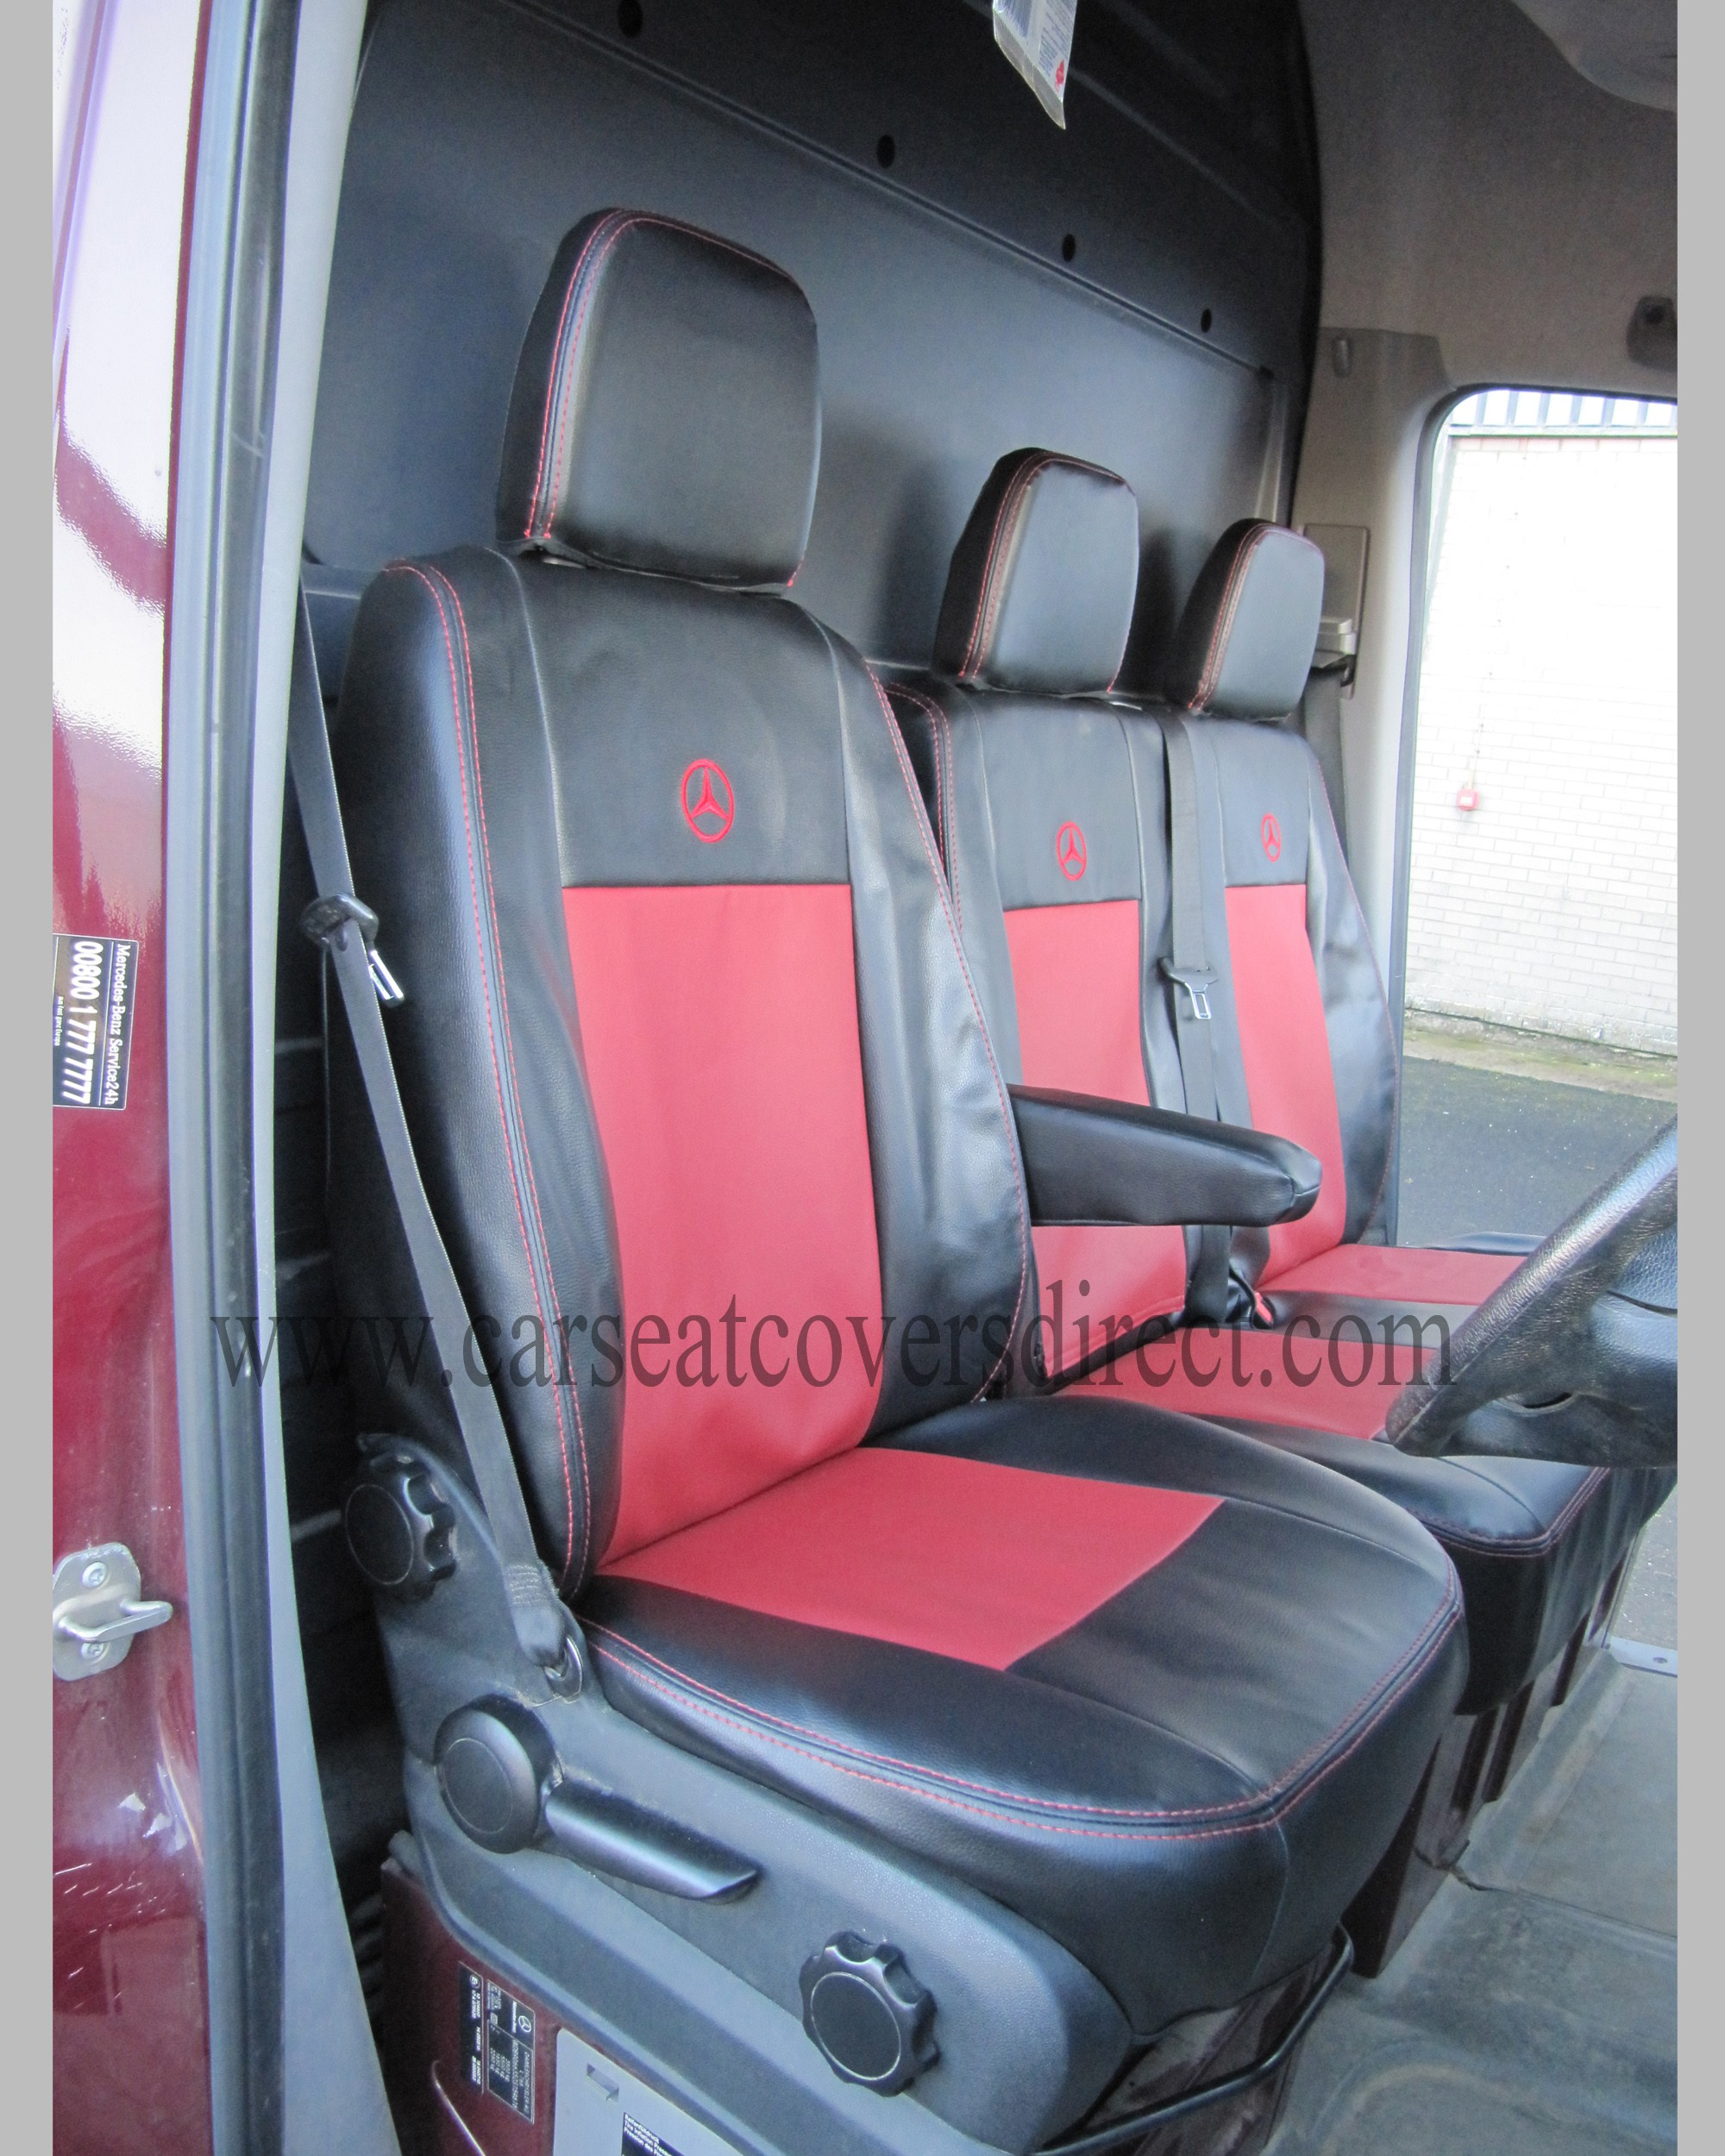 Drivers seat with seat covers